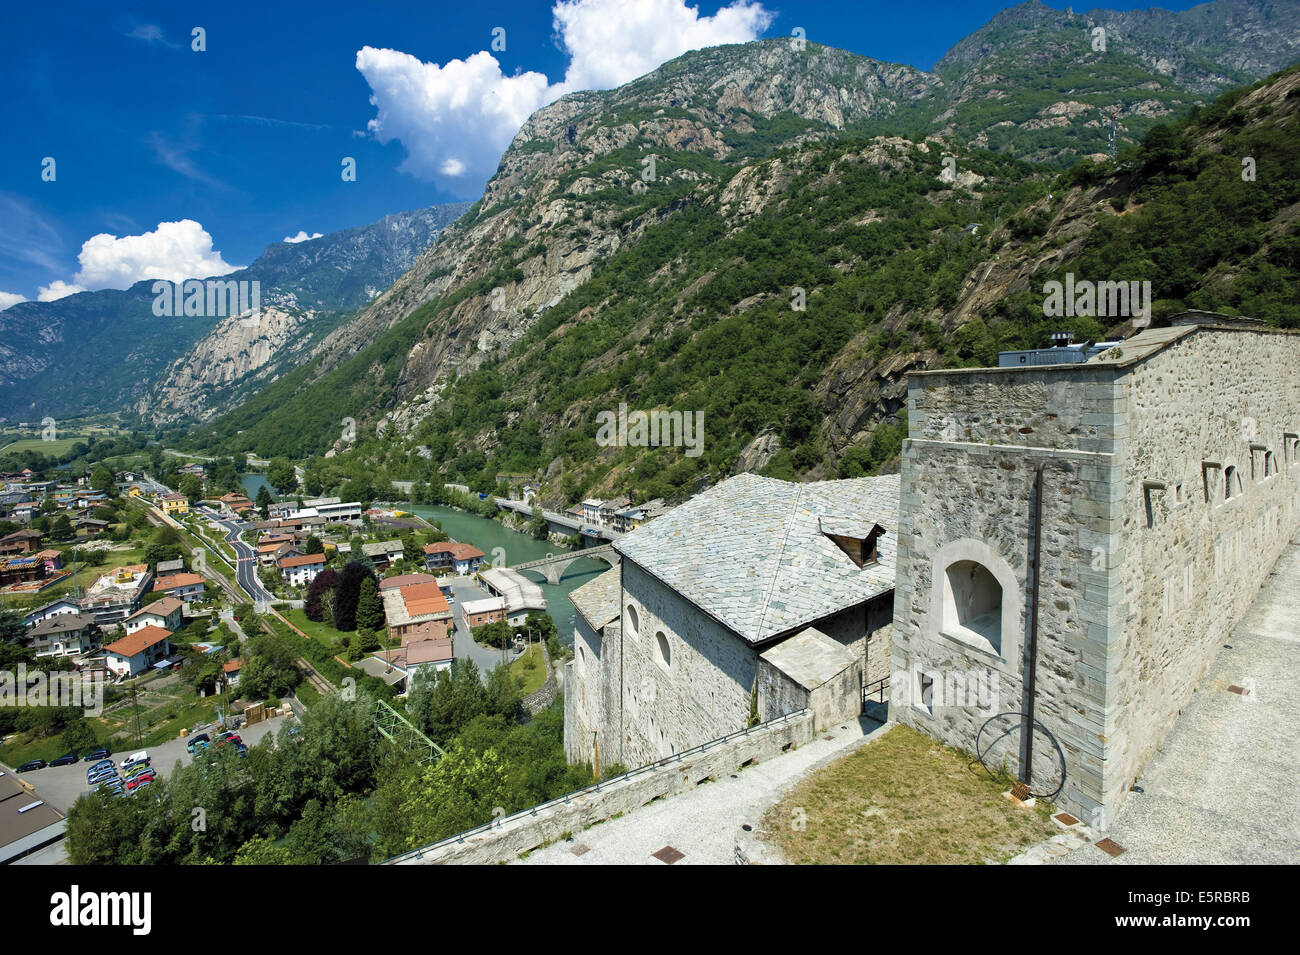 Italy Valley of Aosta Bard the brief Fort - Stock Image